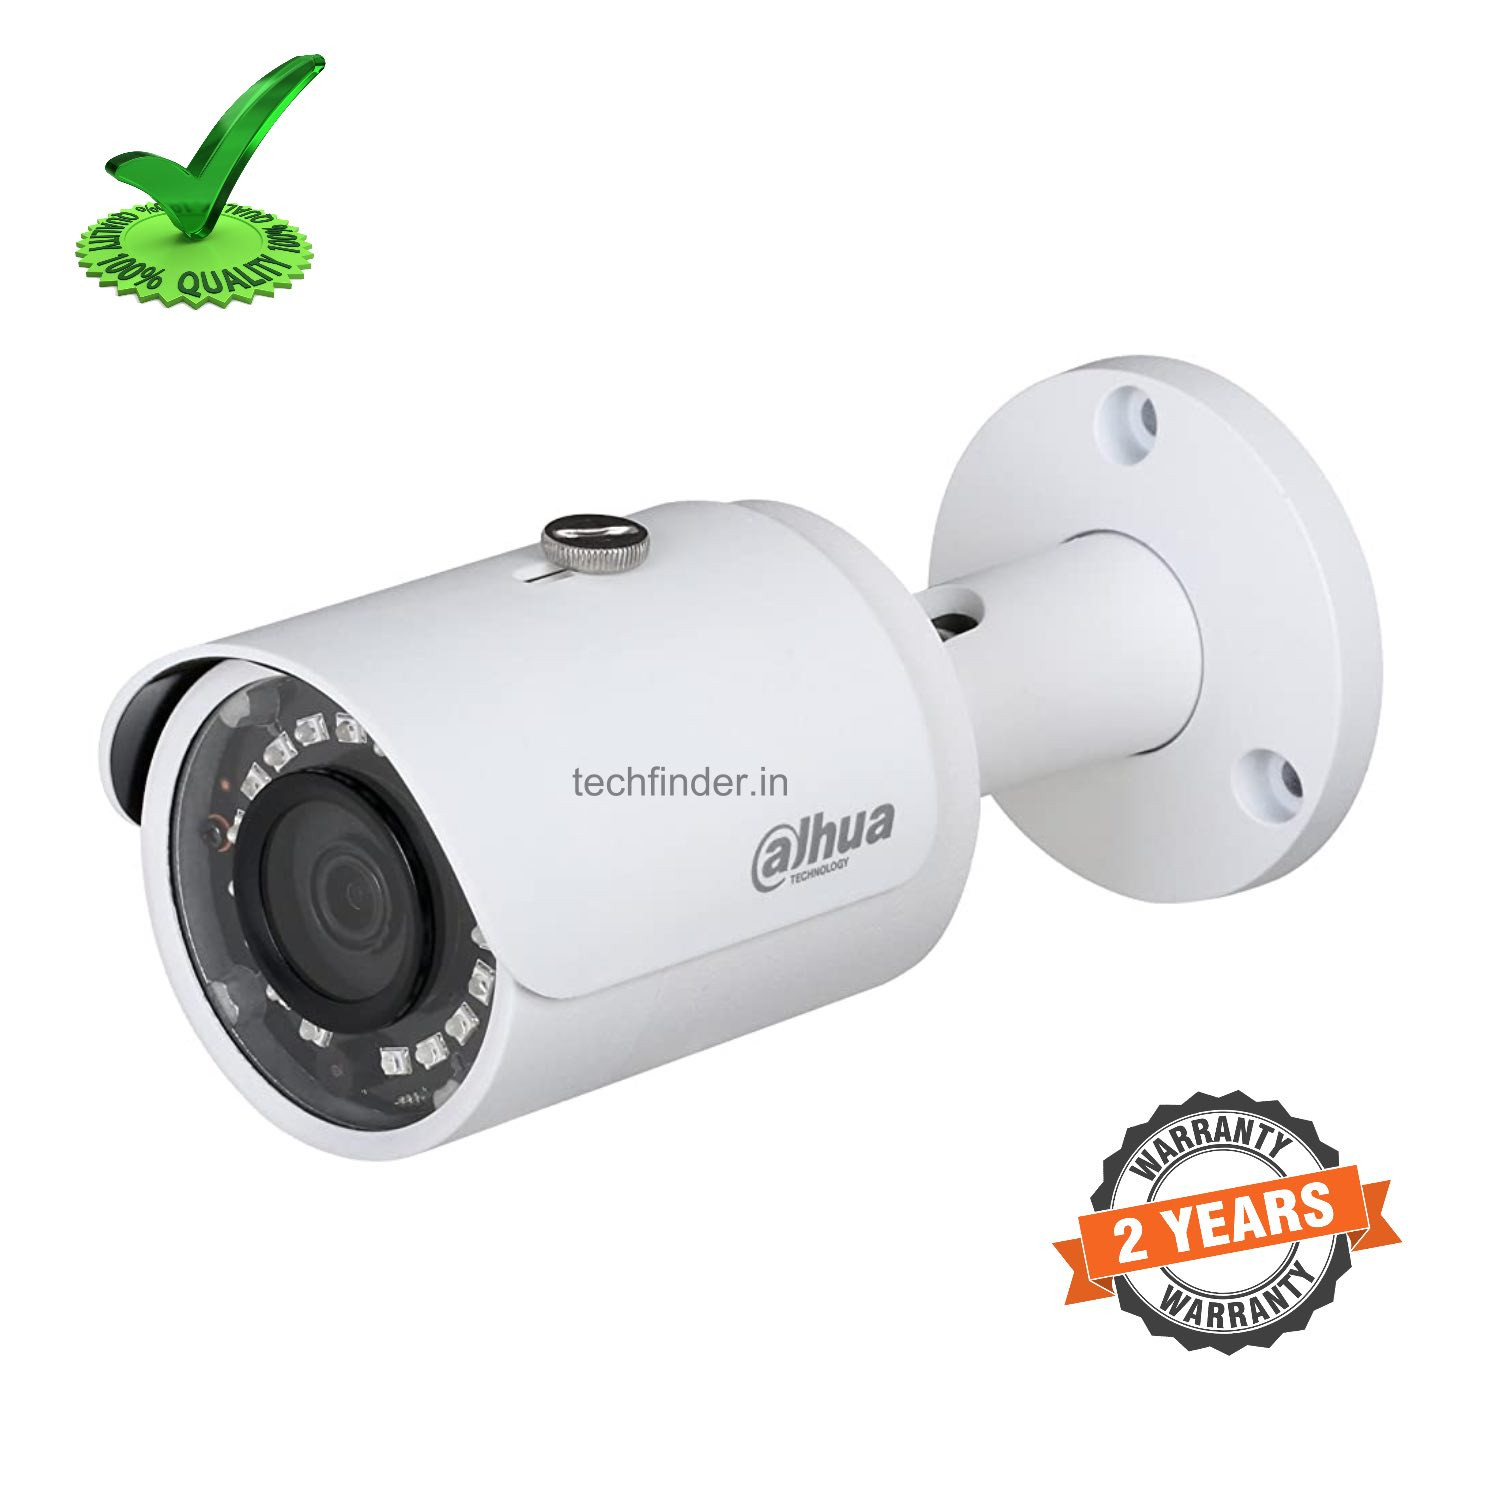 Dahua DH-IPC-HFW12B0SP-L 2MP IR Metal Mini-Bullet Network IP Camera